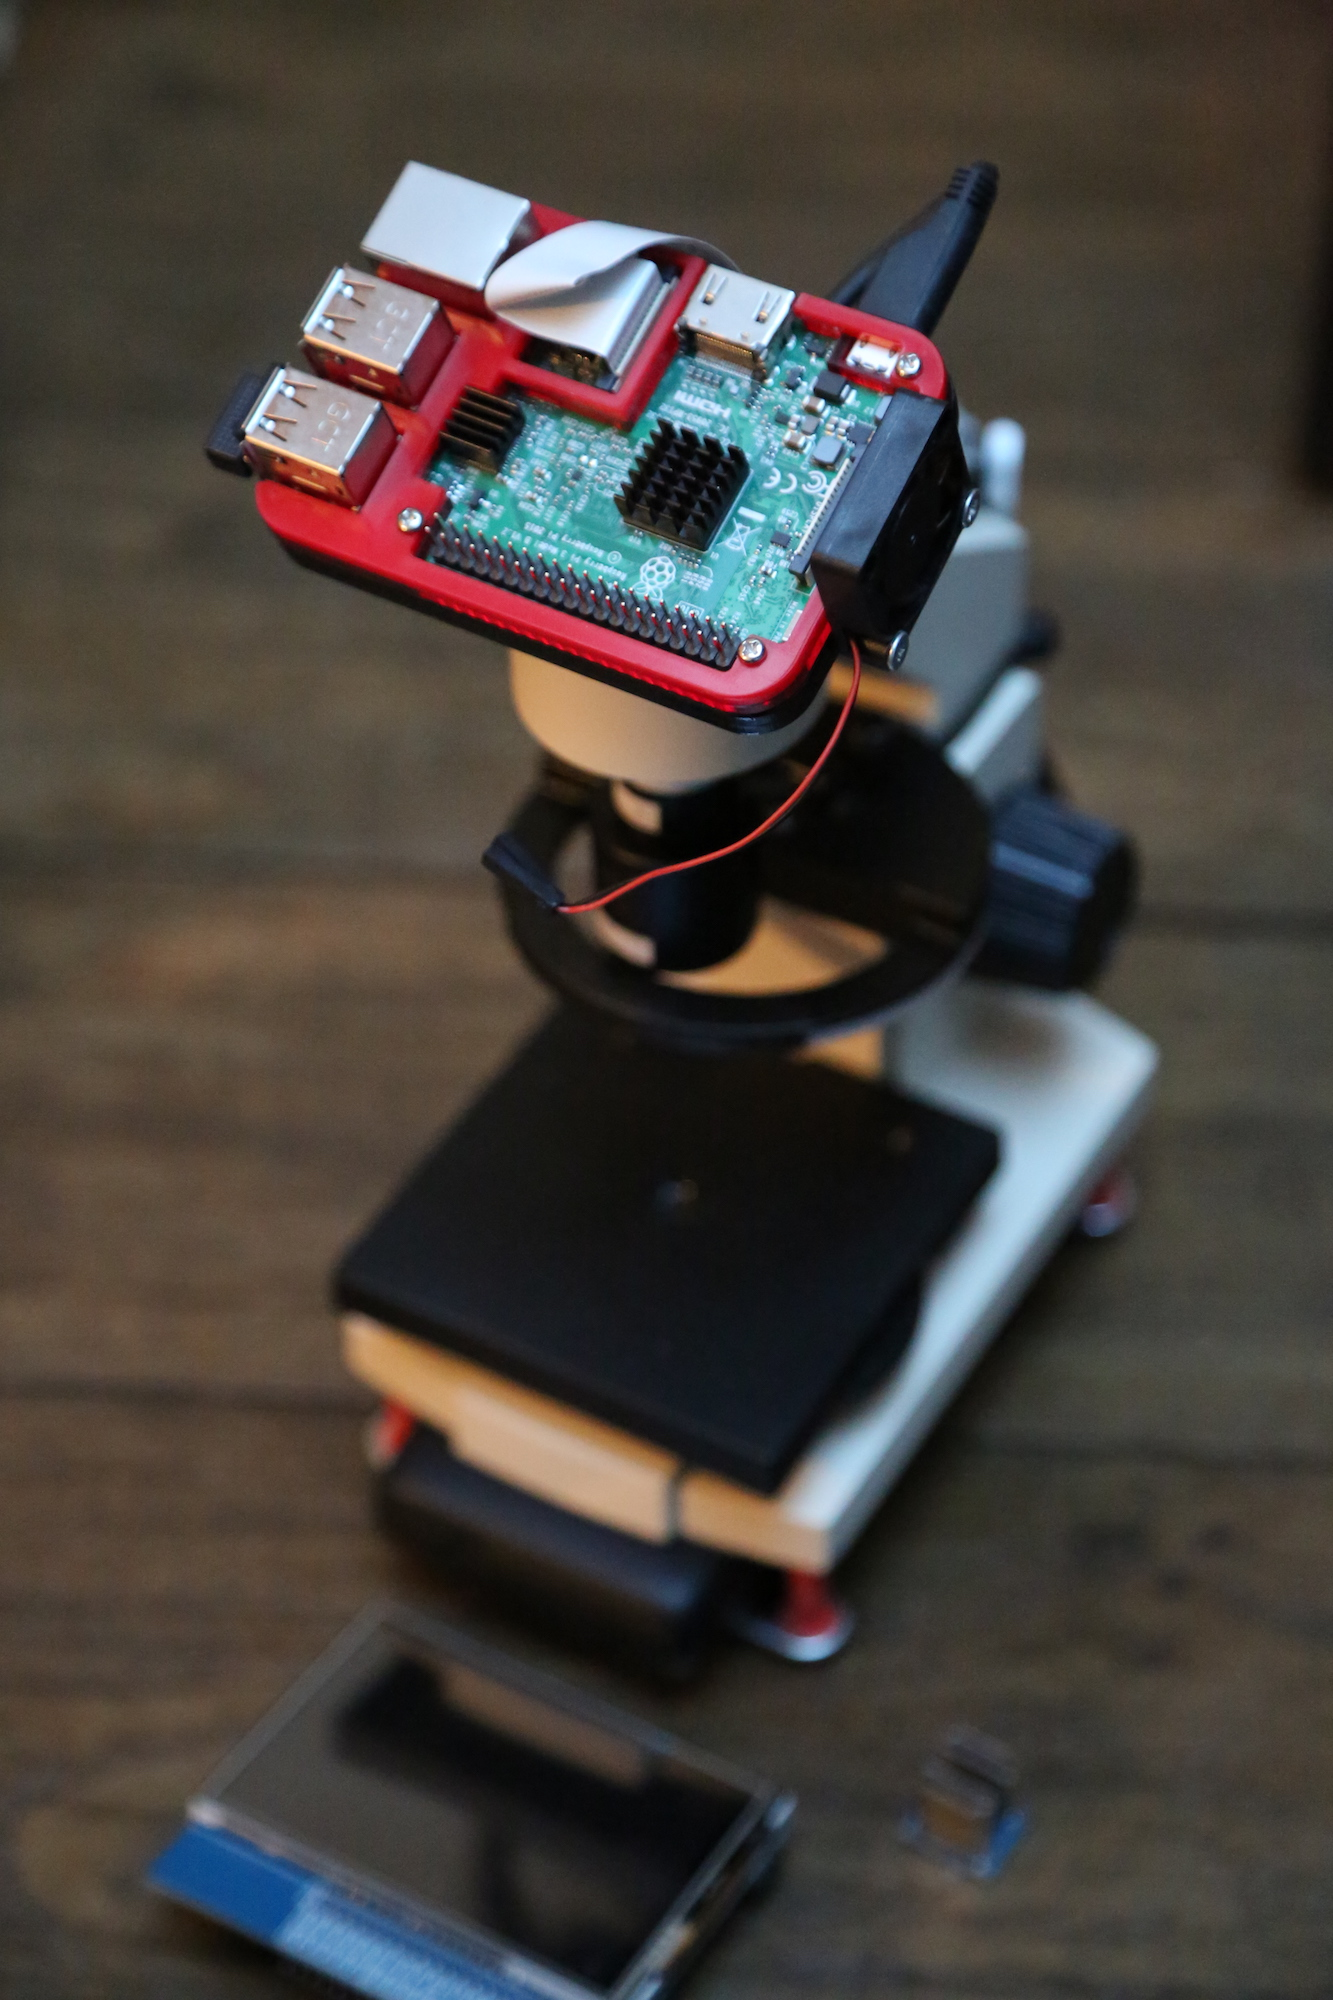 A low-cost, open-source, computer-assisted microscope